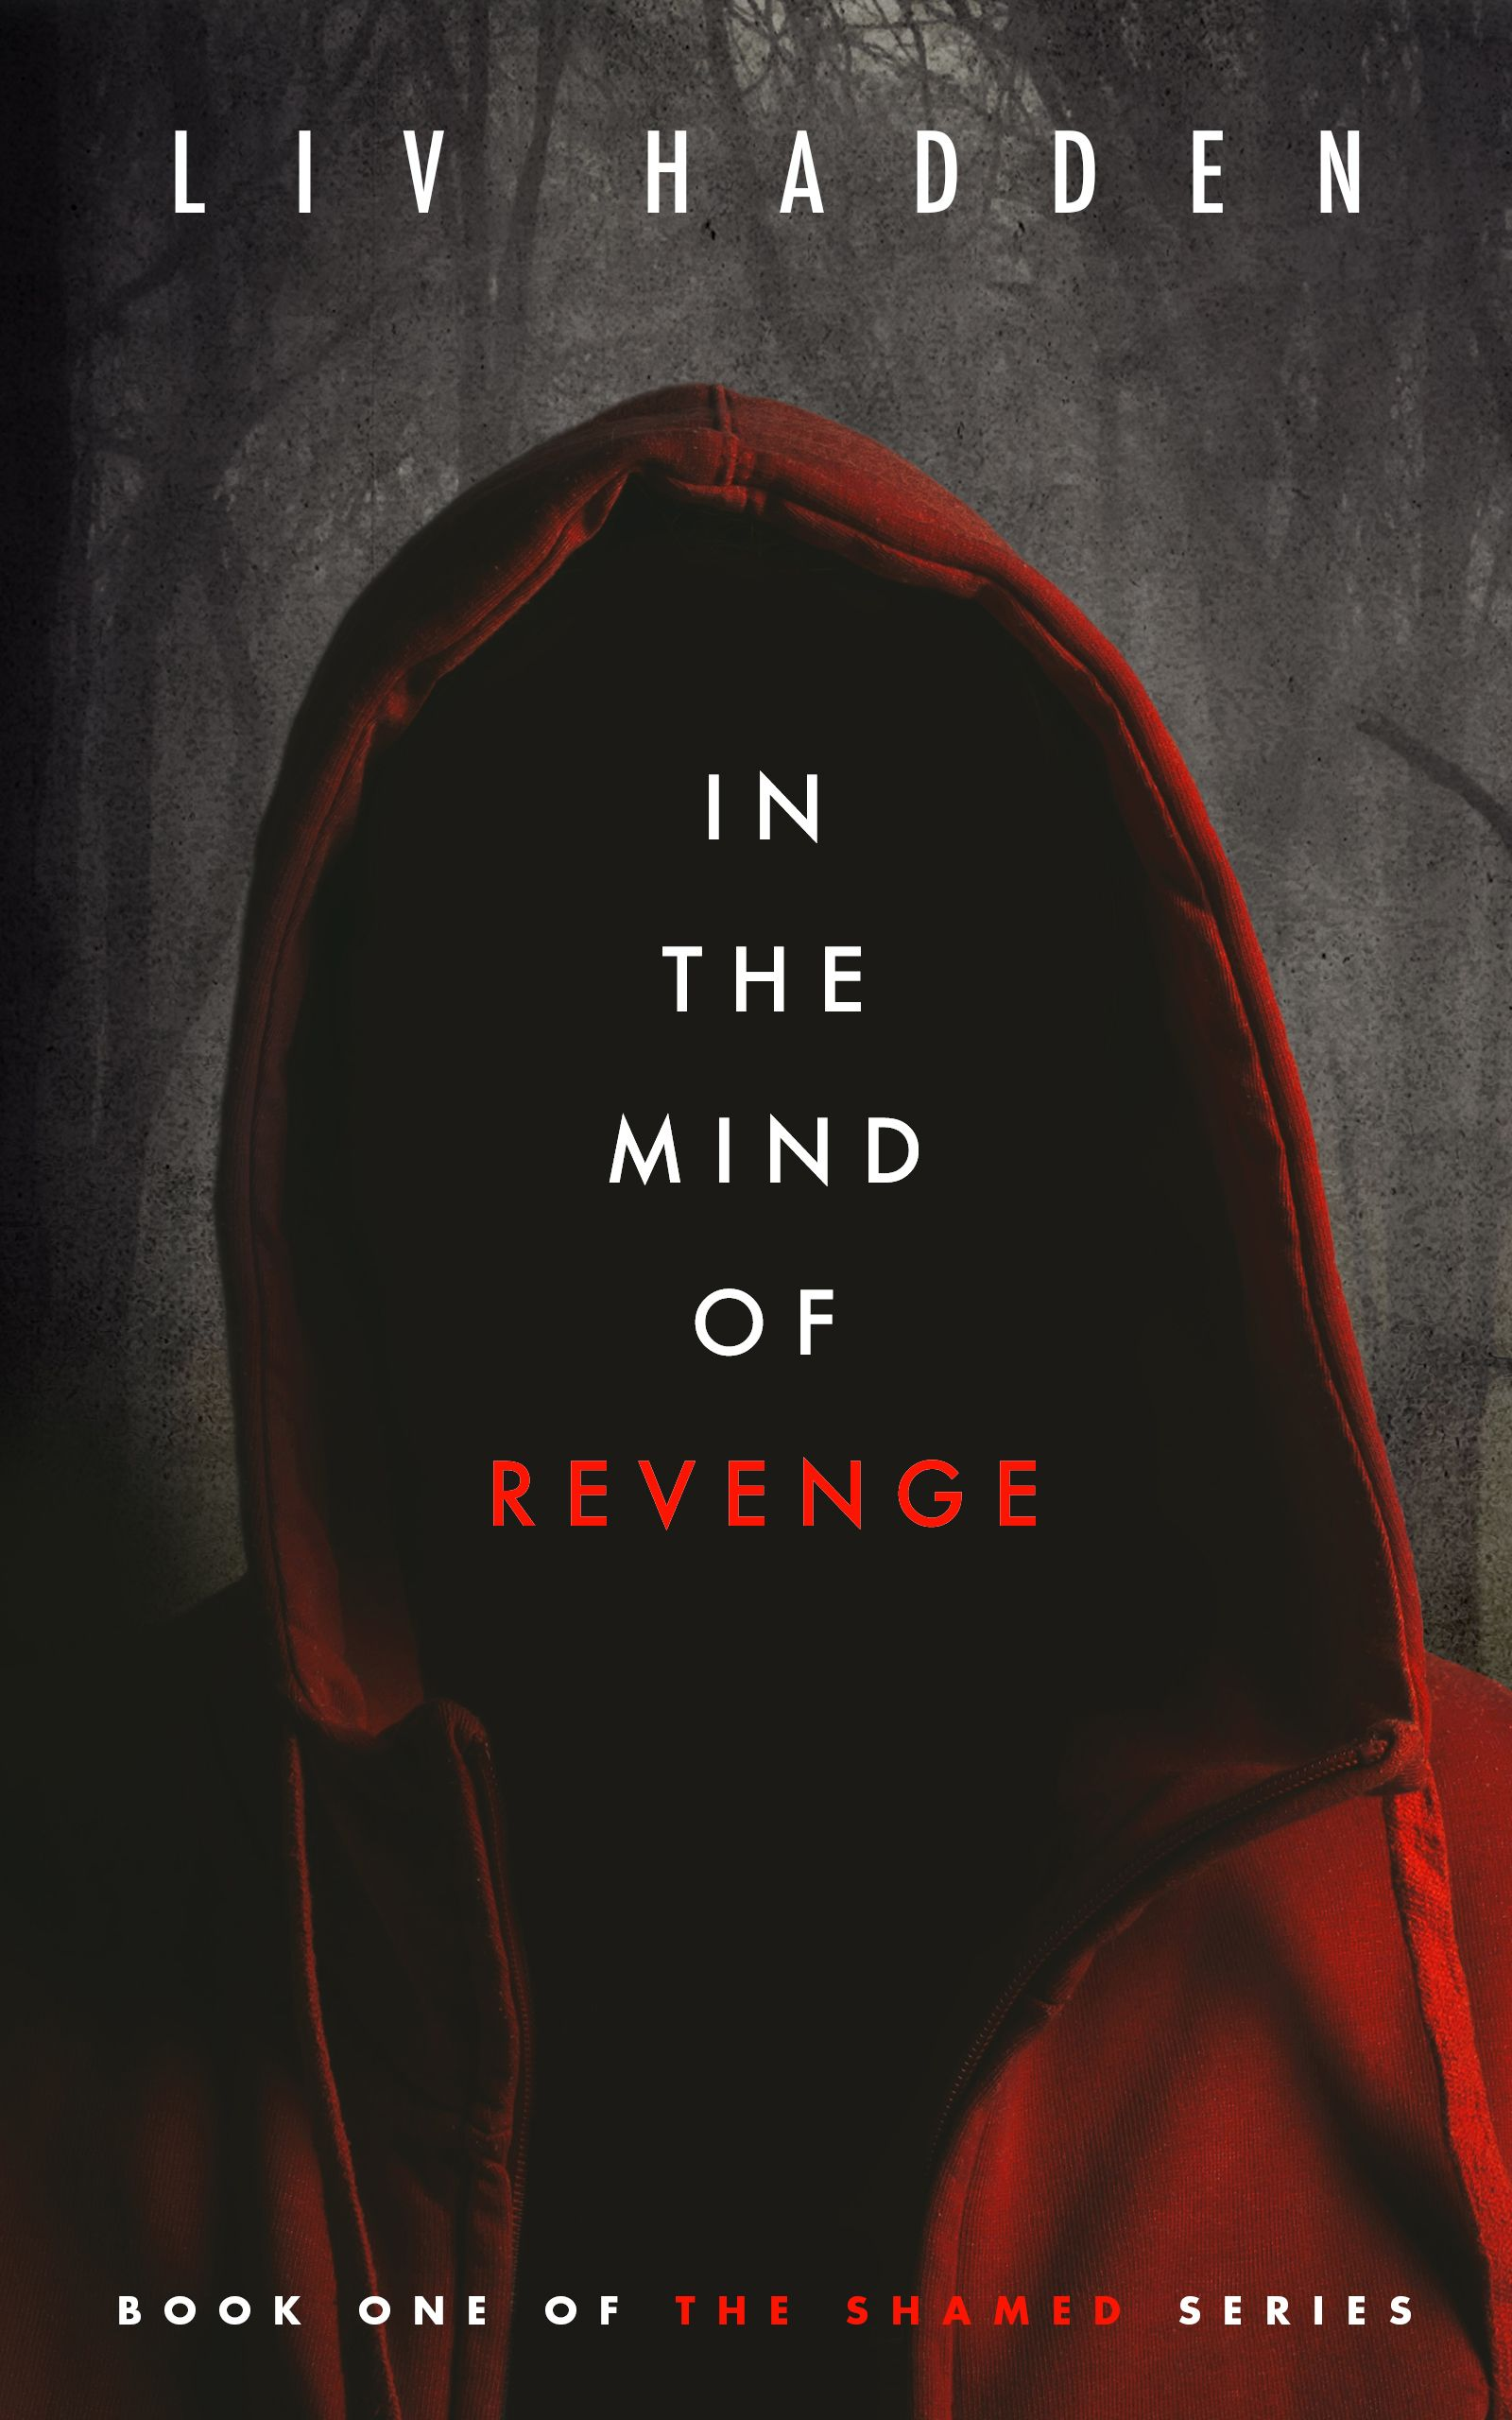 Pin by jake patterson on cover inspiration pinterest book covers pin by jake patterson on cover inspiration pinterest book covers book cover design and revenge fandeluxe Image collections